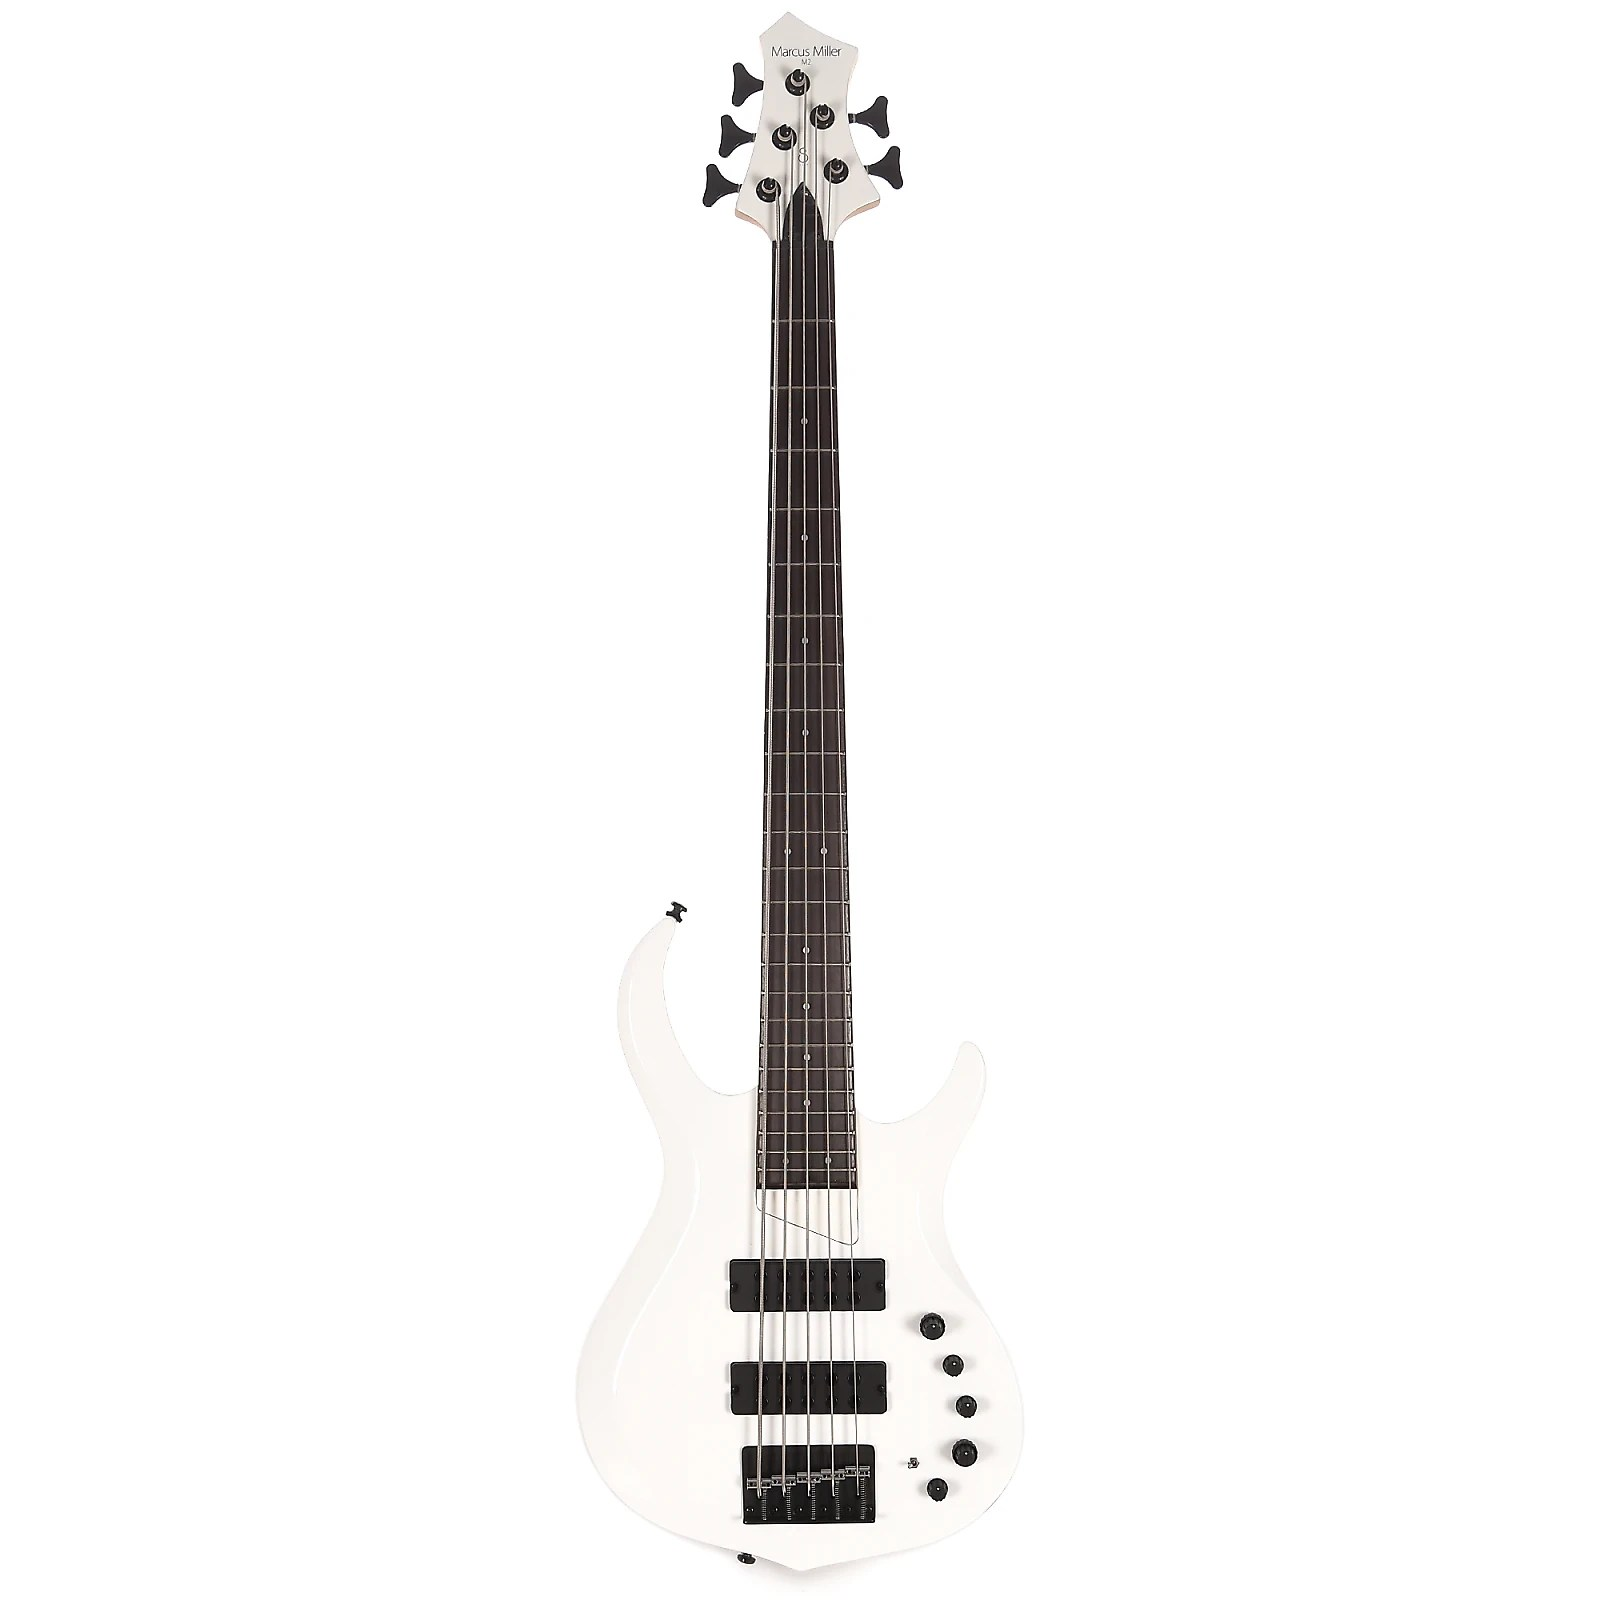 Sire 2nd Generation Marcus Miller M2 5 String